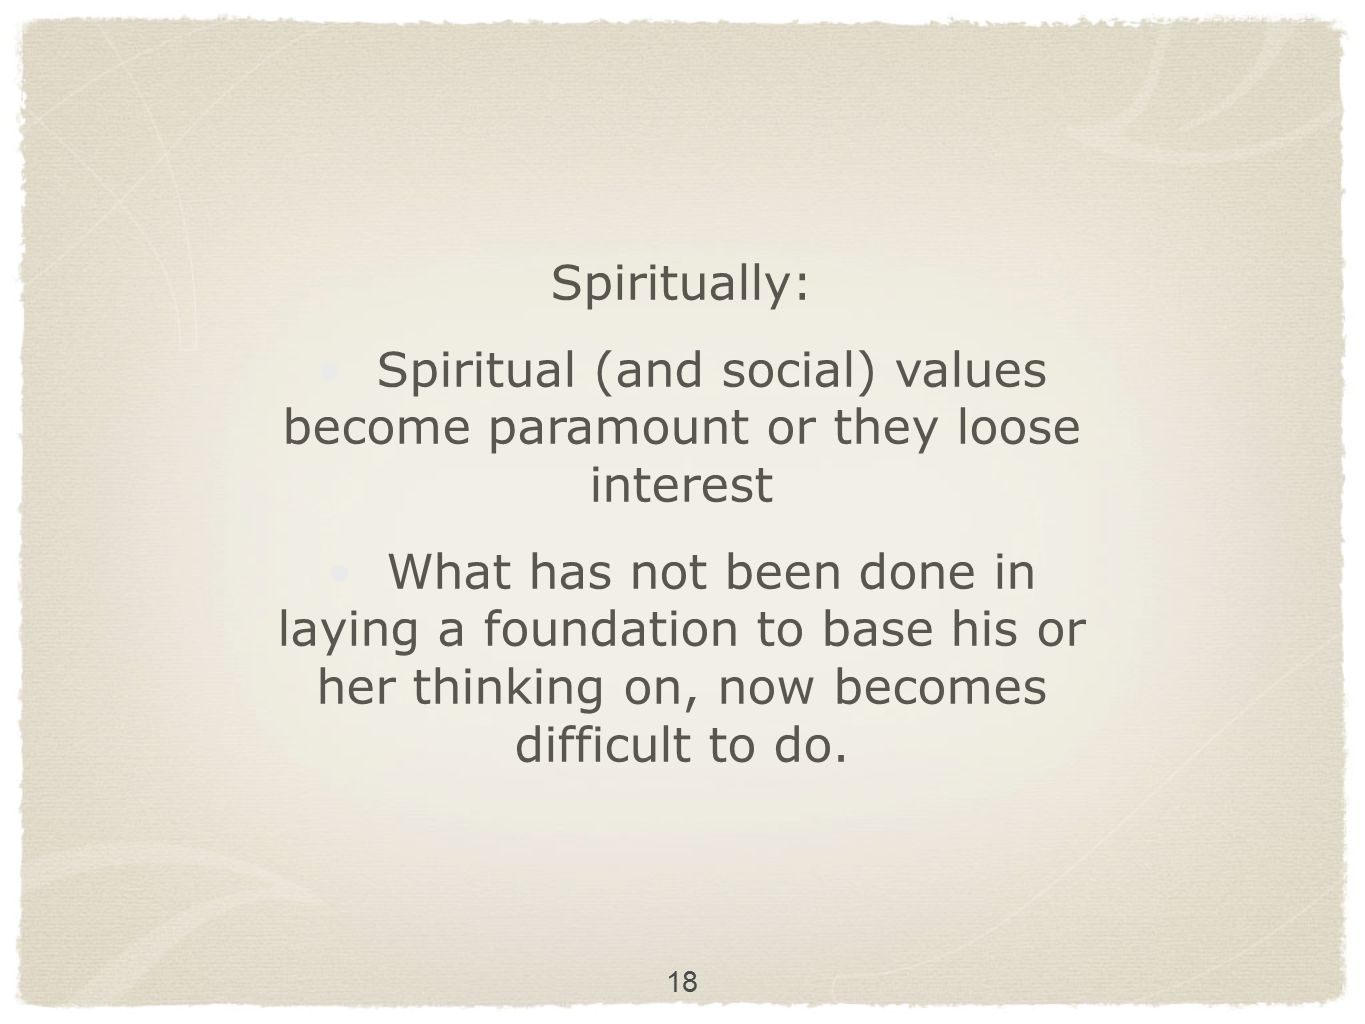 Spiritual (and social) values become paramount or they loose interest